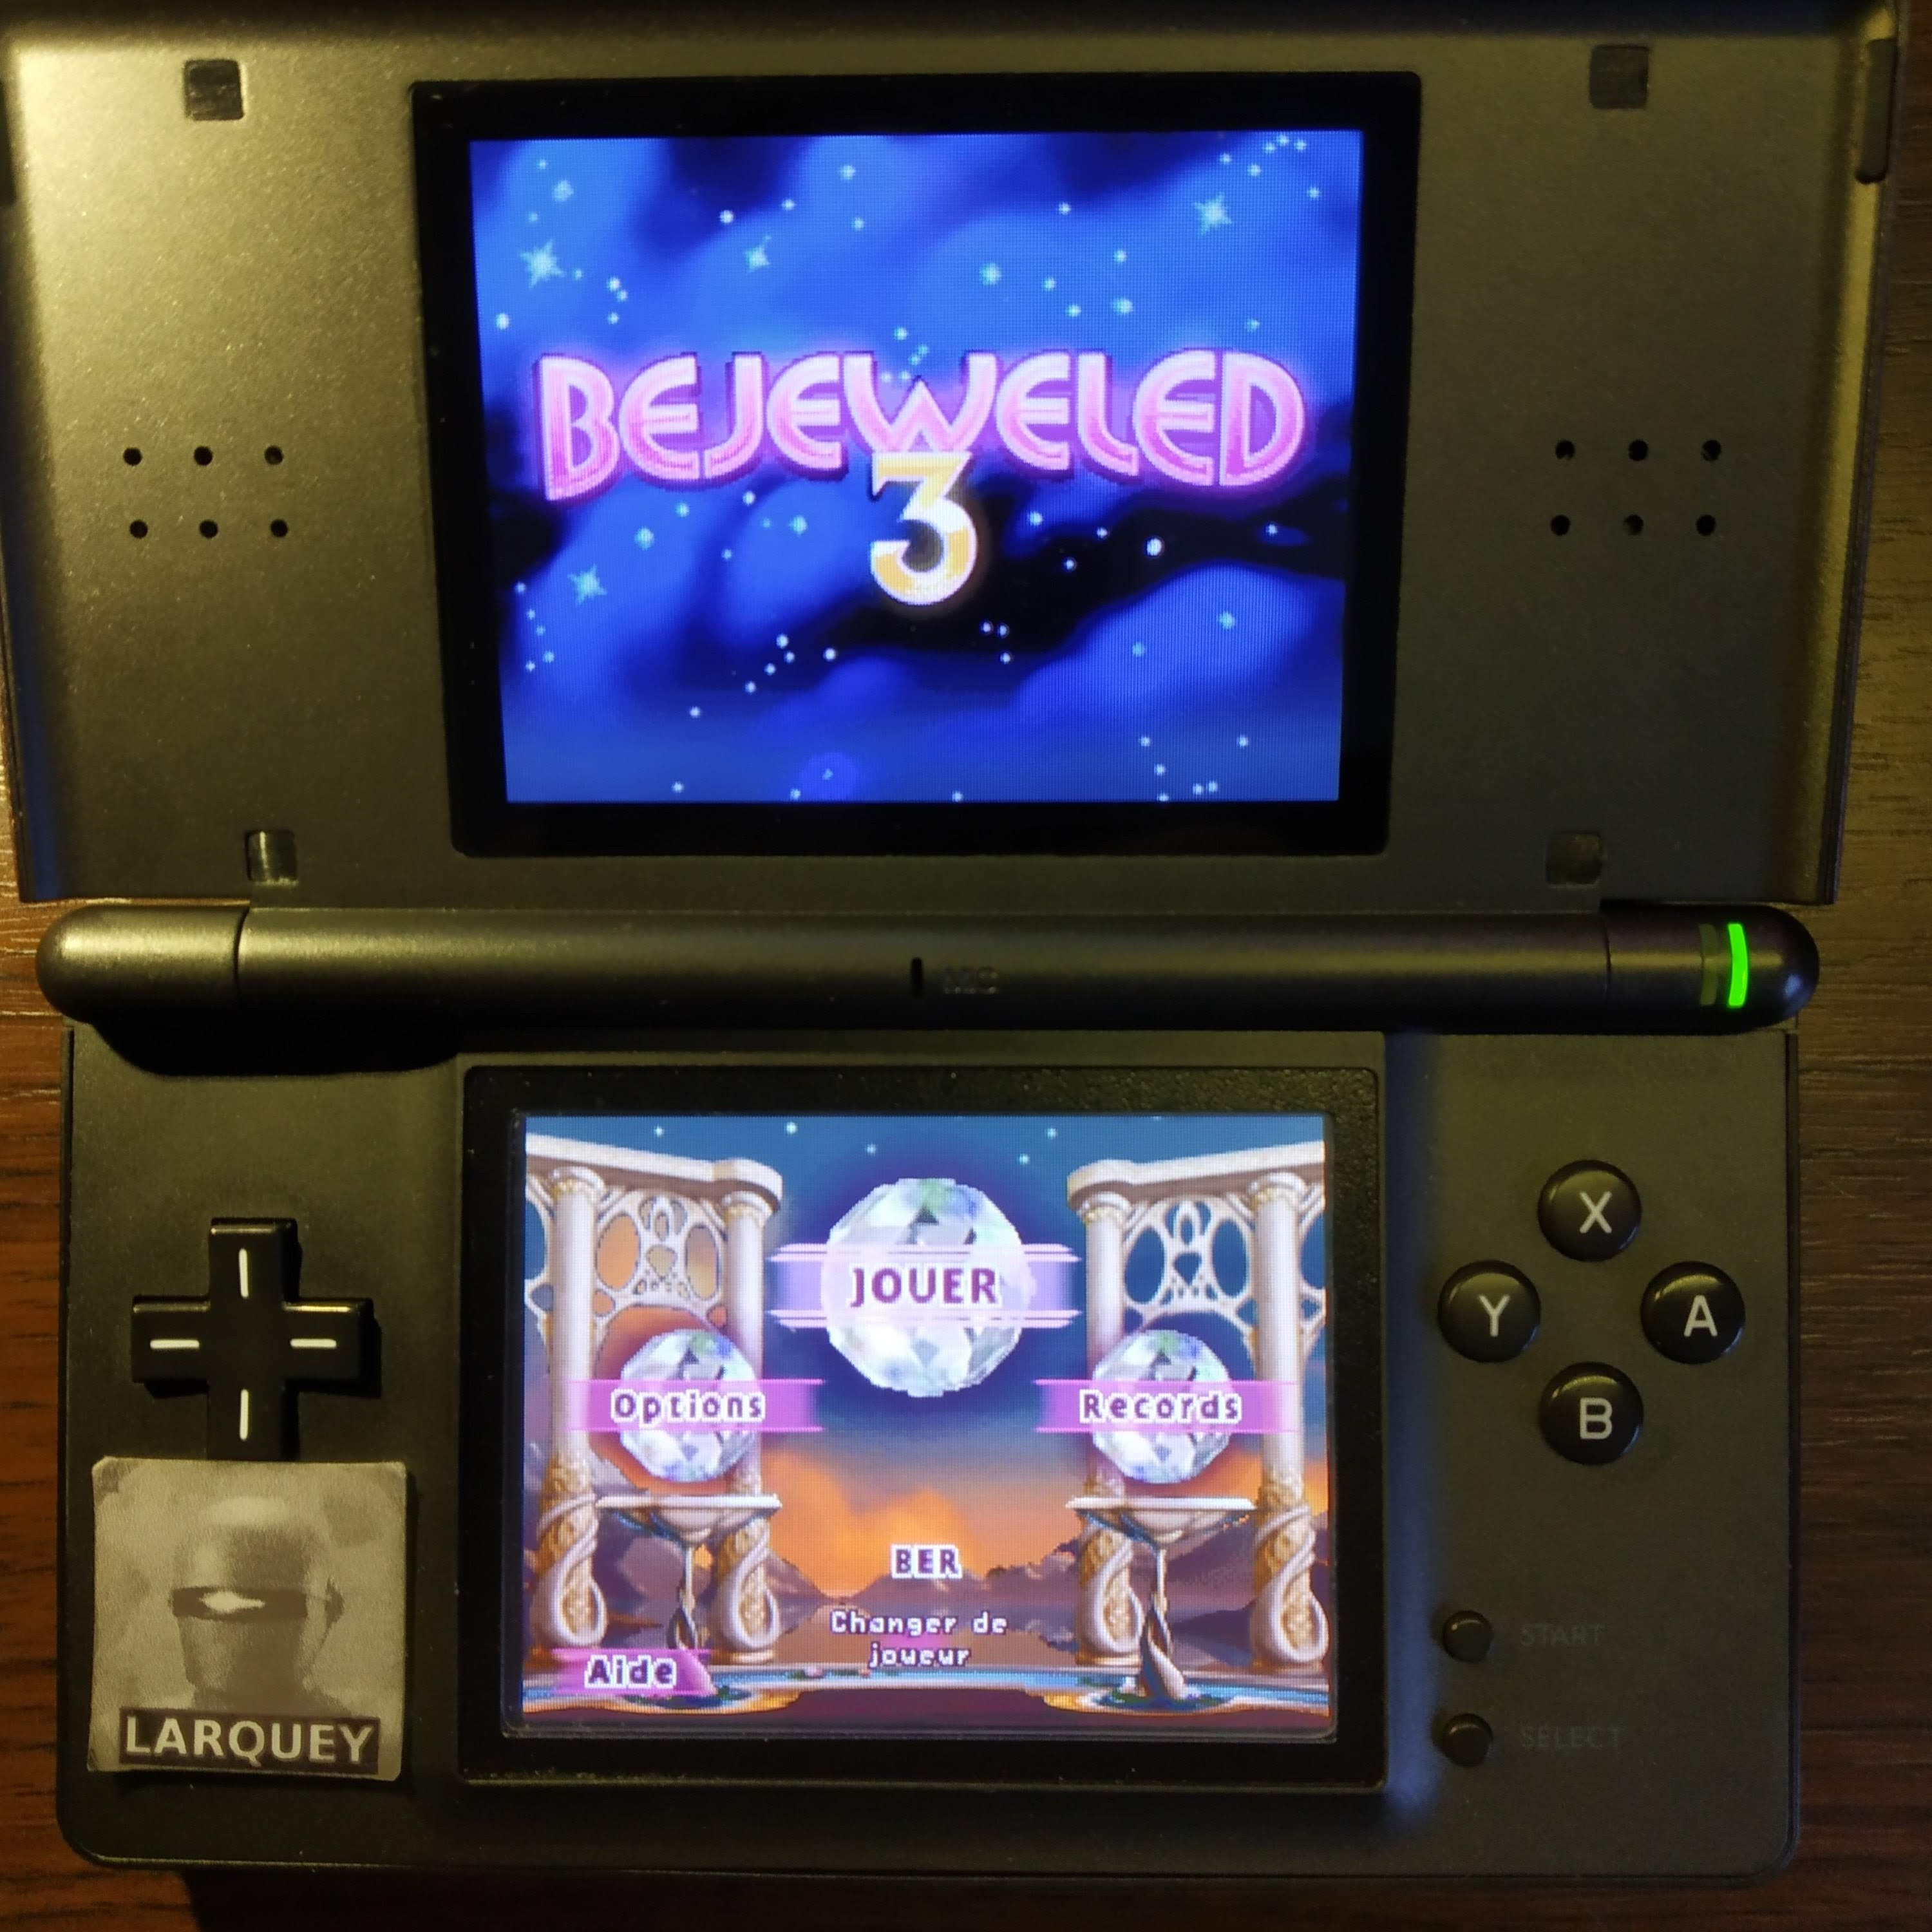 Larquey: Bejeweled 3: Classic [High Score] (Nintendo DS) 28,760 points on 2020-09-24 12:19:15